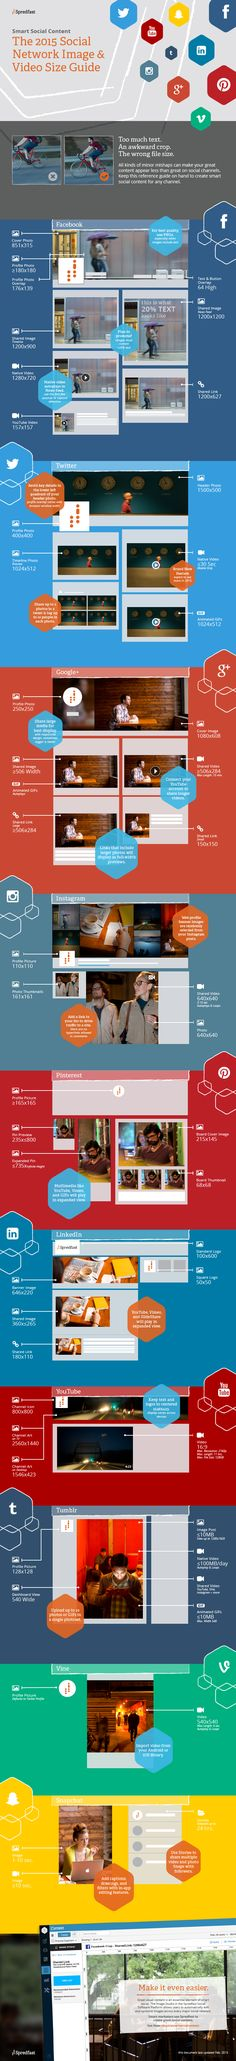 The 2015 Social Network Image & Video Size Guide - Spredfast